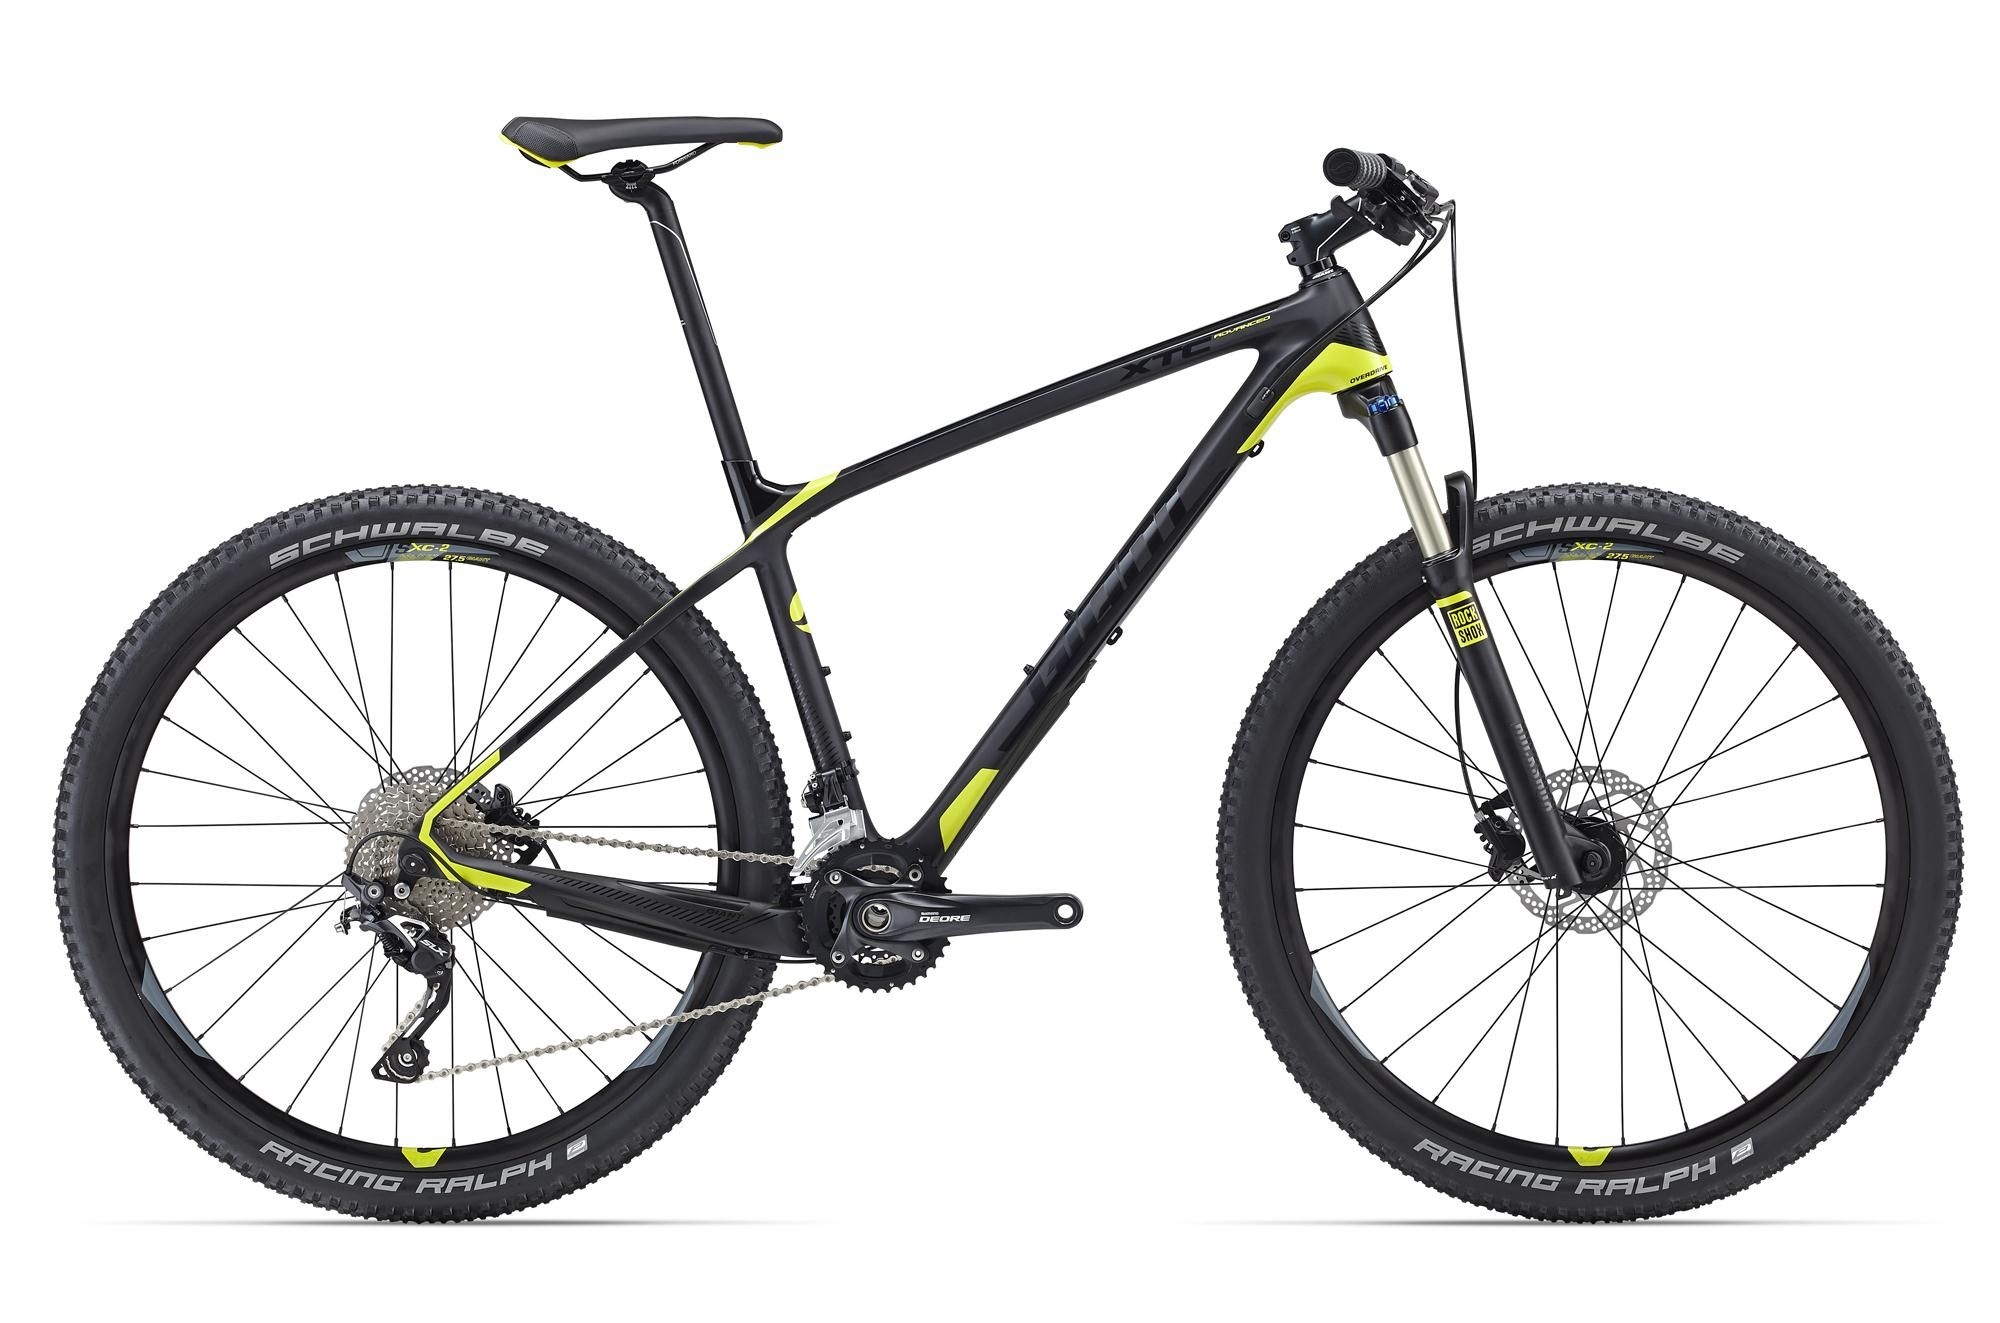 Велосипед Giant XtC Advanced 27.5 3 2016 велосипед giant trance advanced 27 5 1 2016